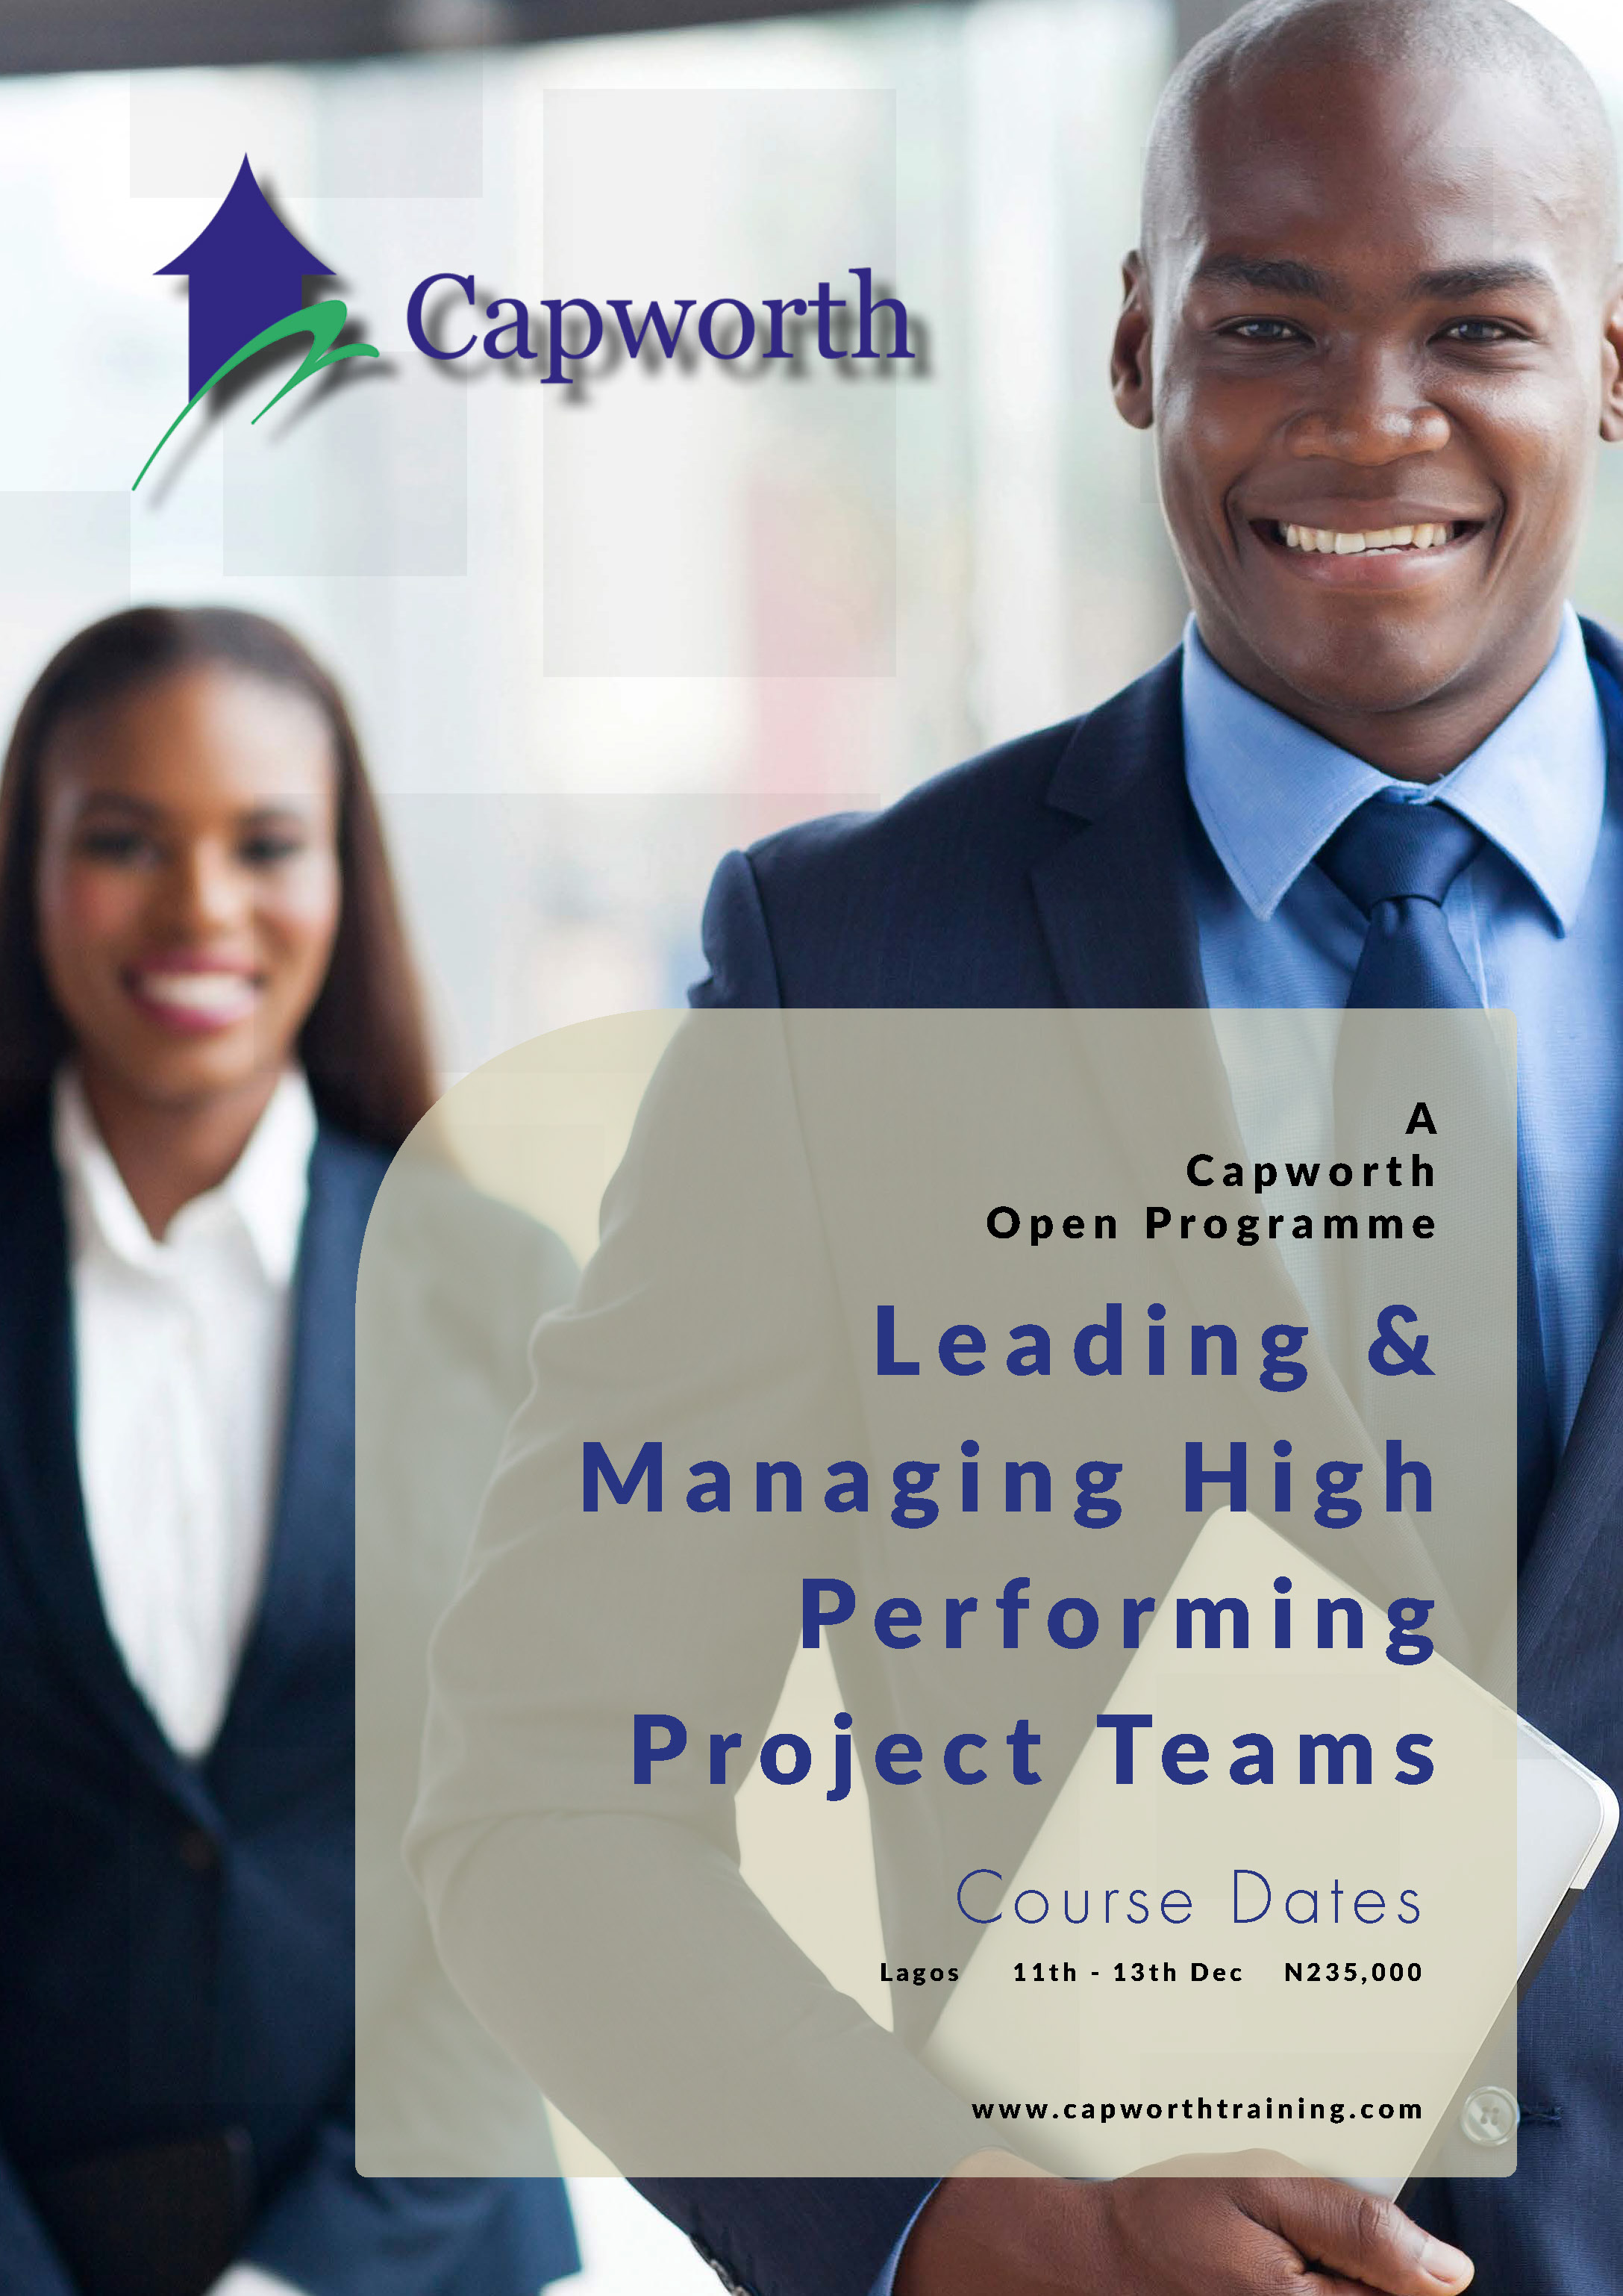 Leading & Managing high performing project teams - Q4 - 2018 - Open Course - v2.0 Dec_Page_1.jpg